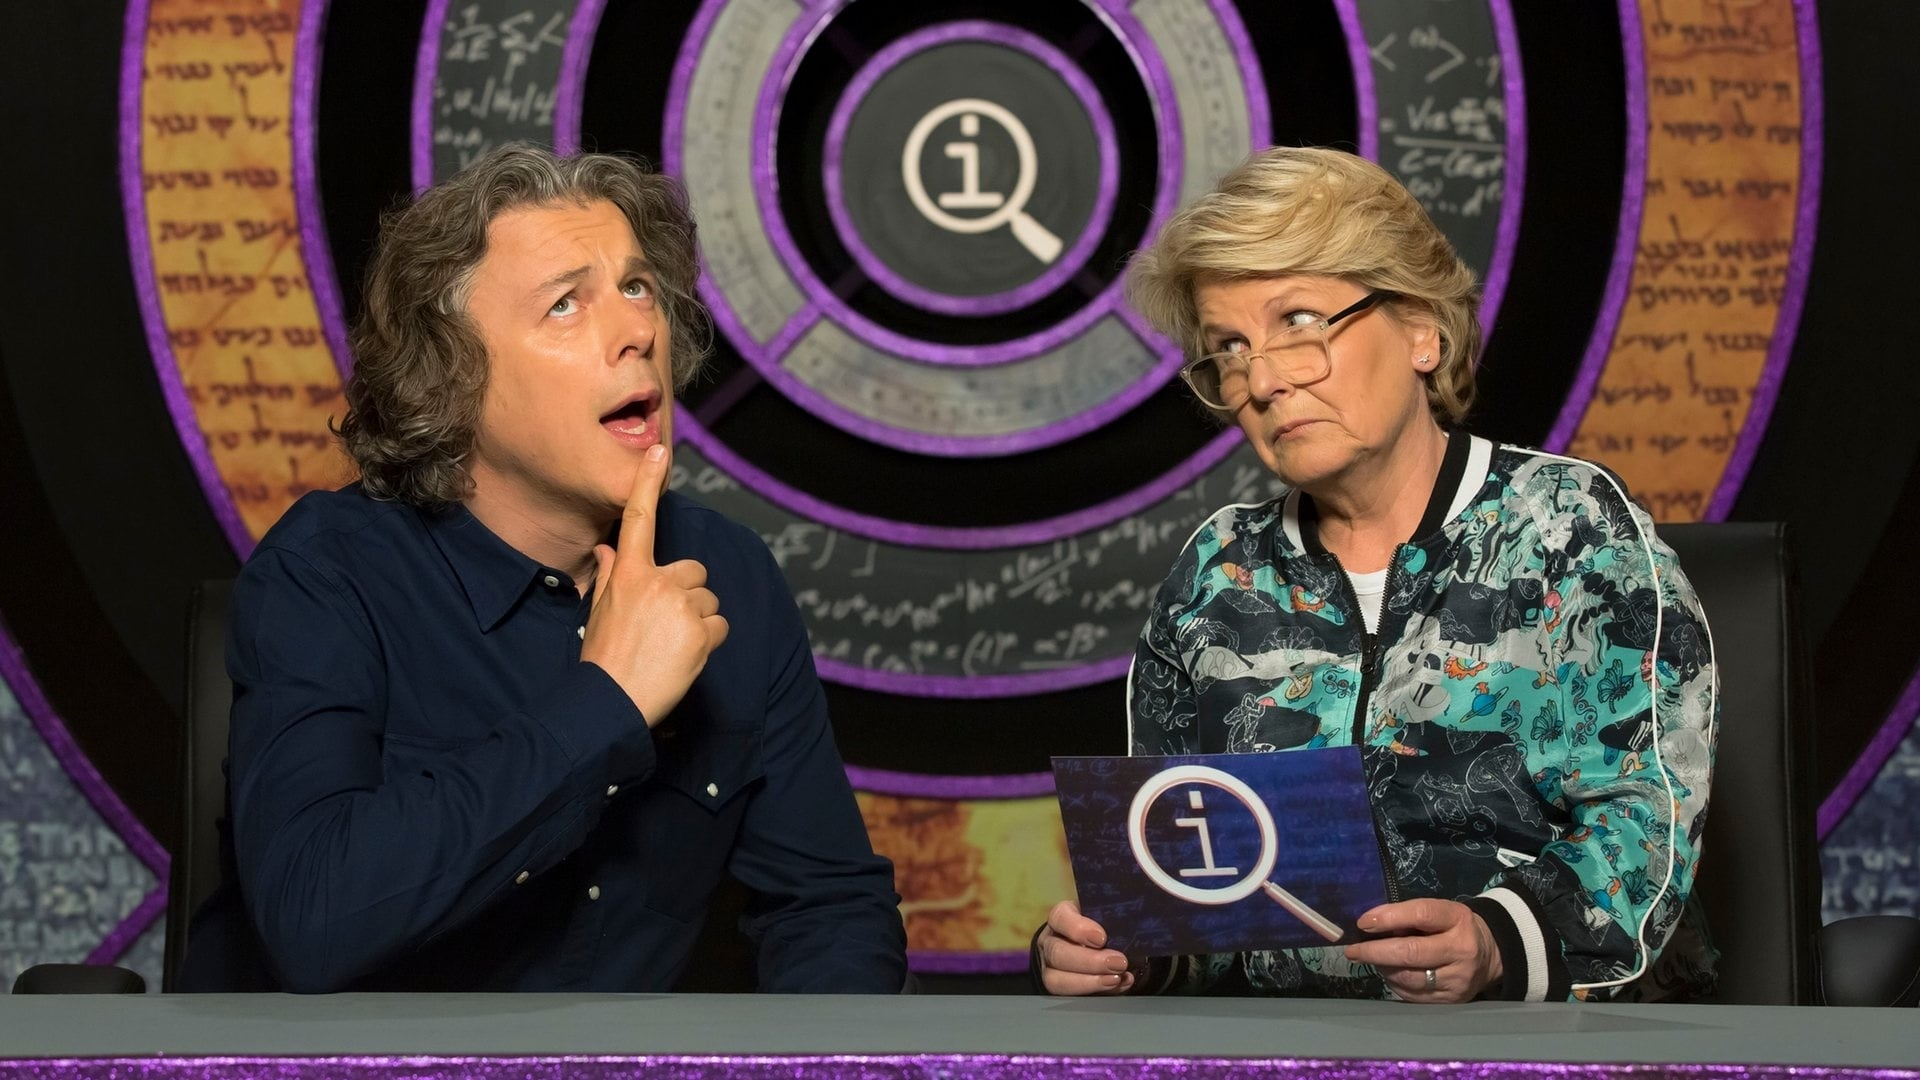 QI - Season 16 Episode 8 : Plants